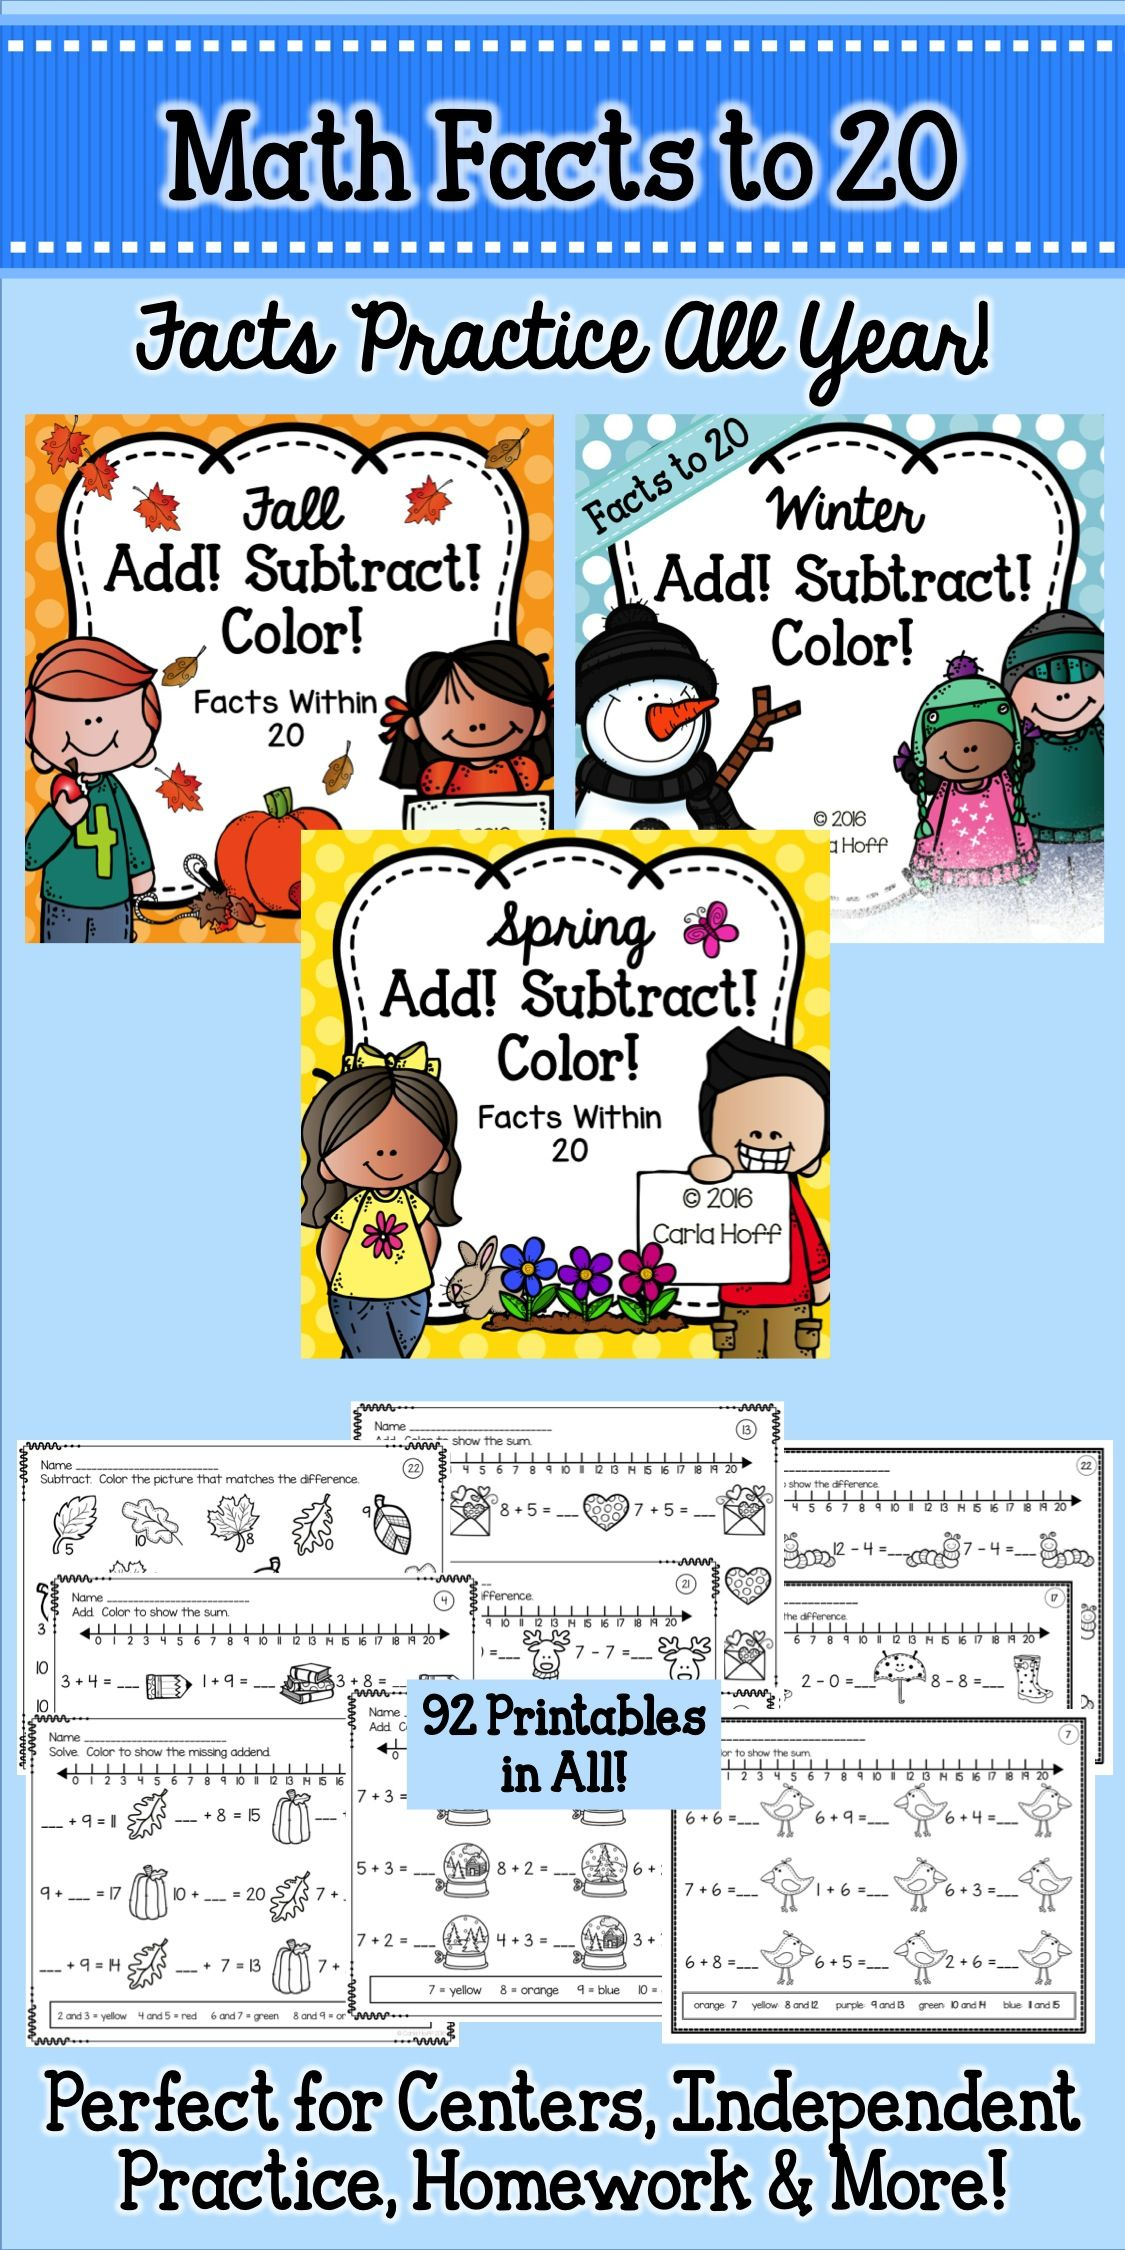 Add! Subtract! Color! is such a fun way to provide practice with addition and subtraction within 20.  This money-saving bundle includes 93 printables in all, illustrated with seasonal and non-seasonal images so they can be used year round!  Perfect for centers, morning work, independent practice, or homework.